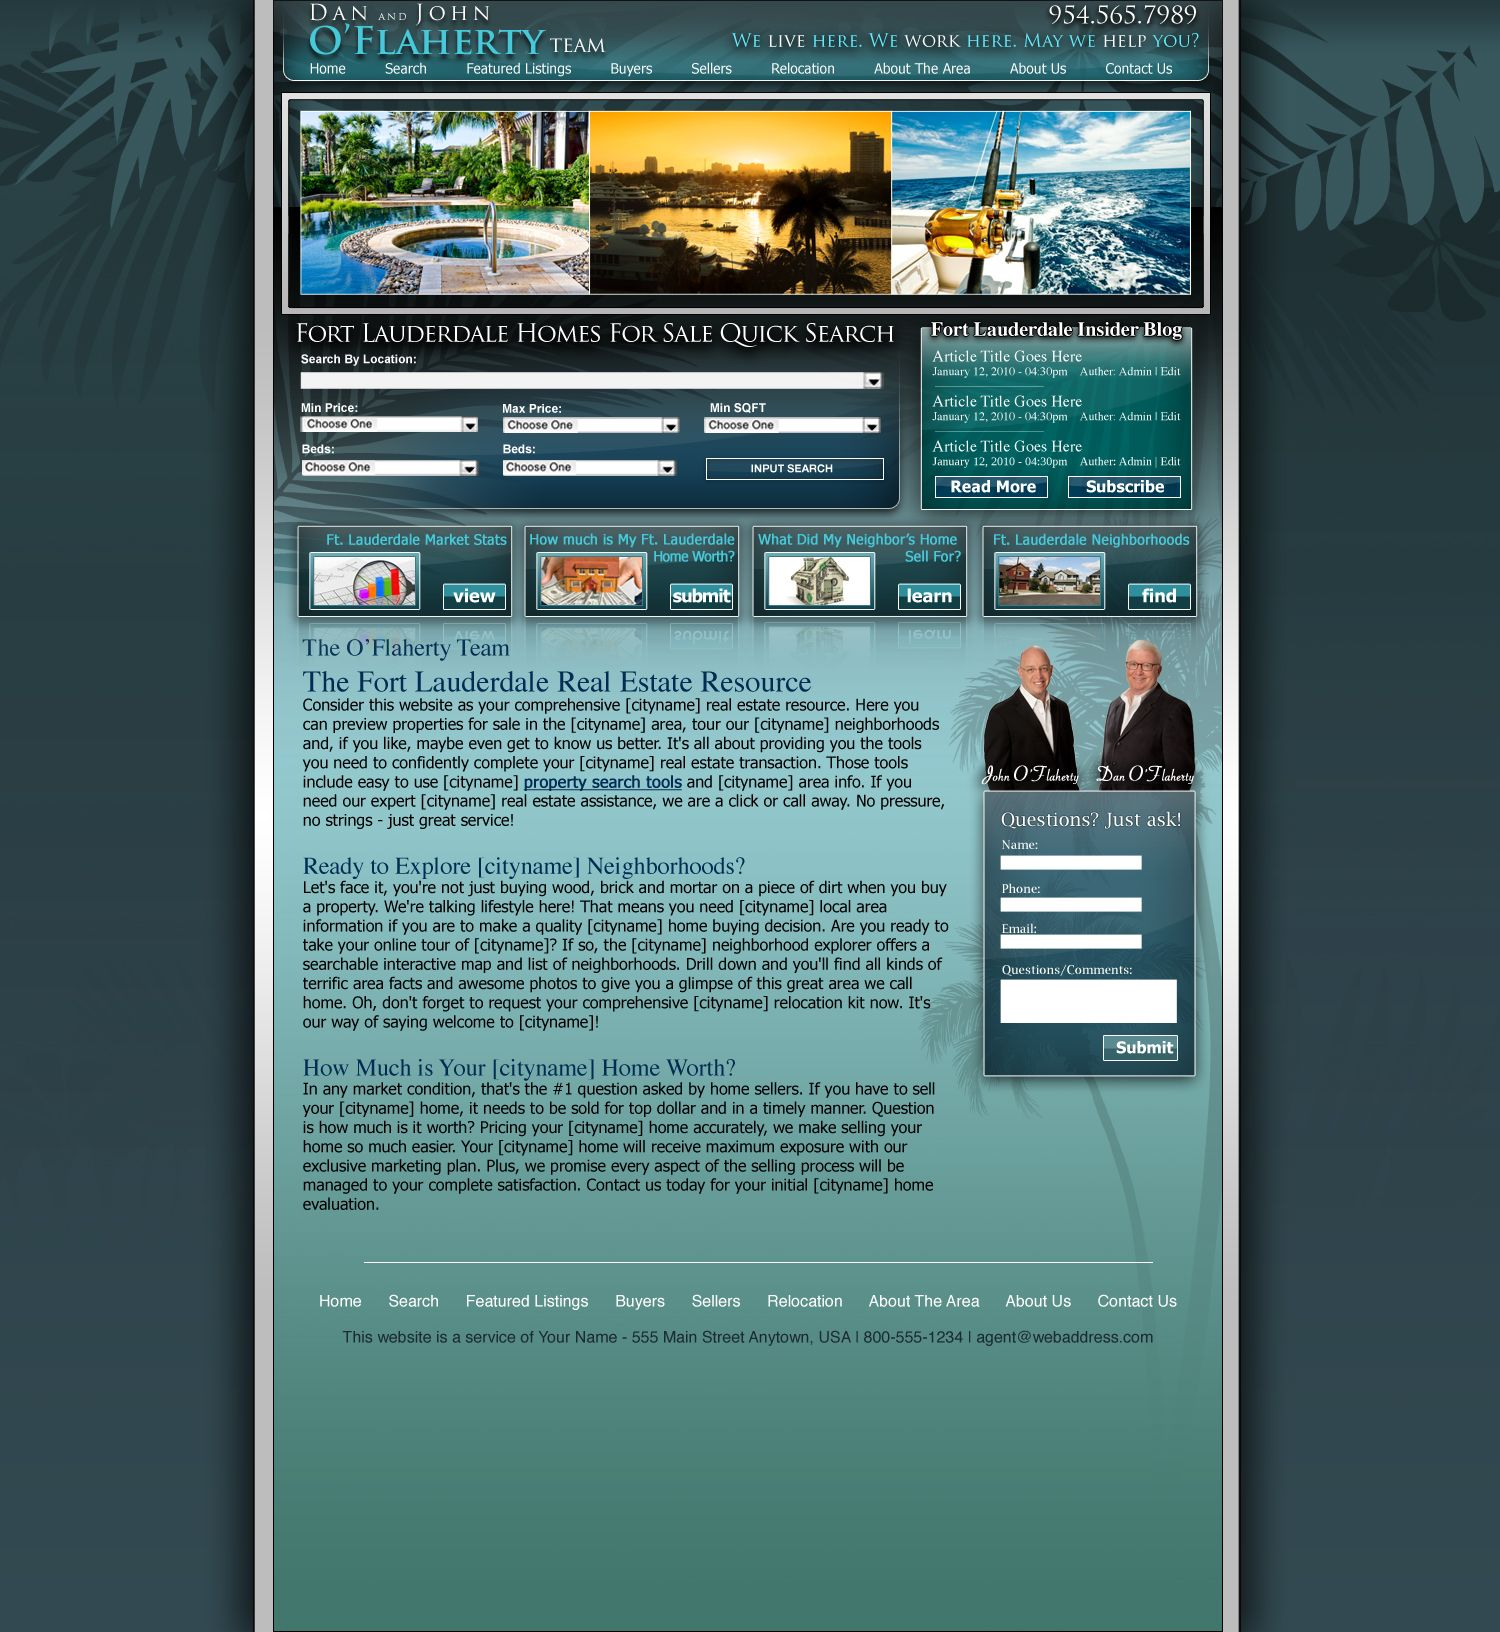 Dakno Customized Hybrid Real Estate Website And Wordpress Blog Designed For Fort Lauderdale Real Fort Lauderdale Real Estate Real Estate Web Design Real Estate